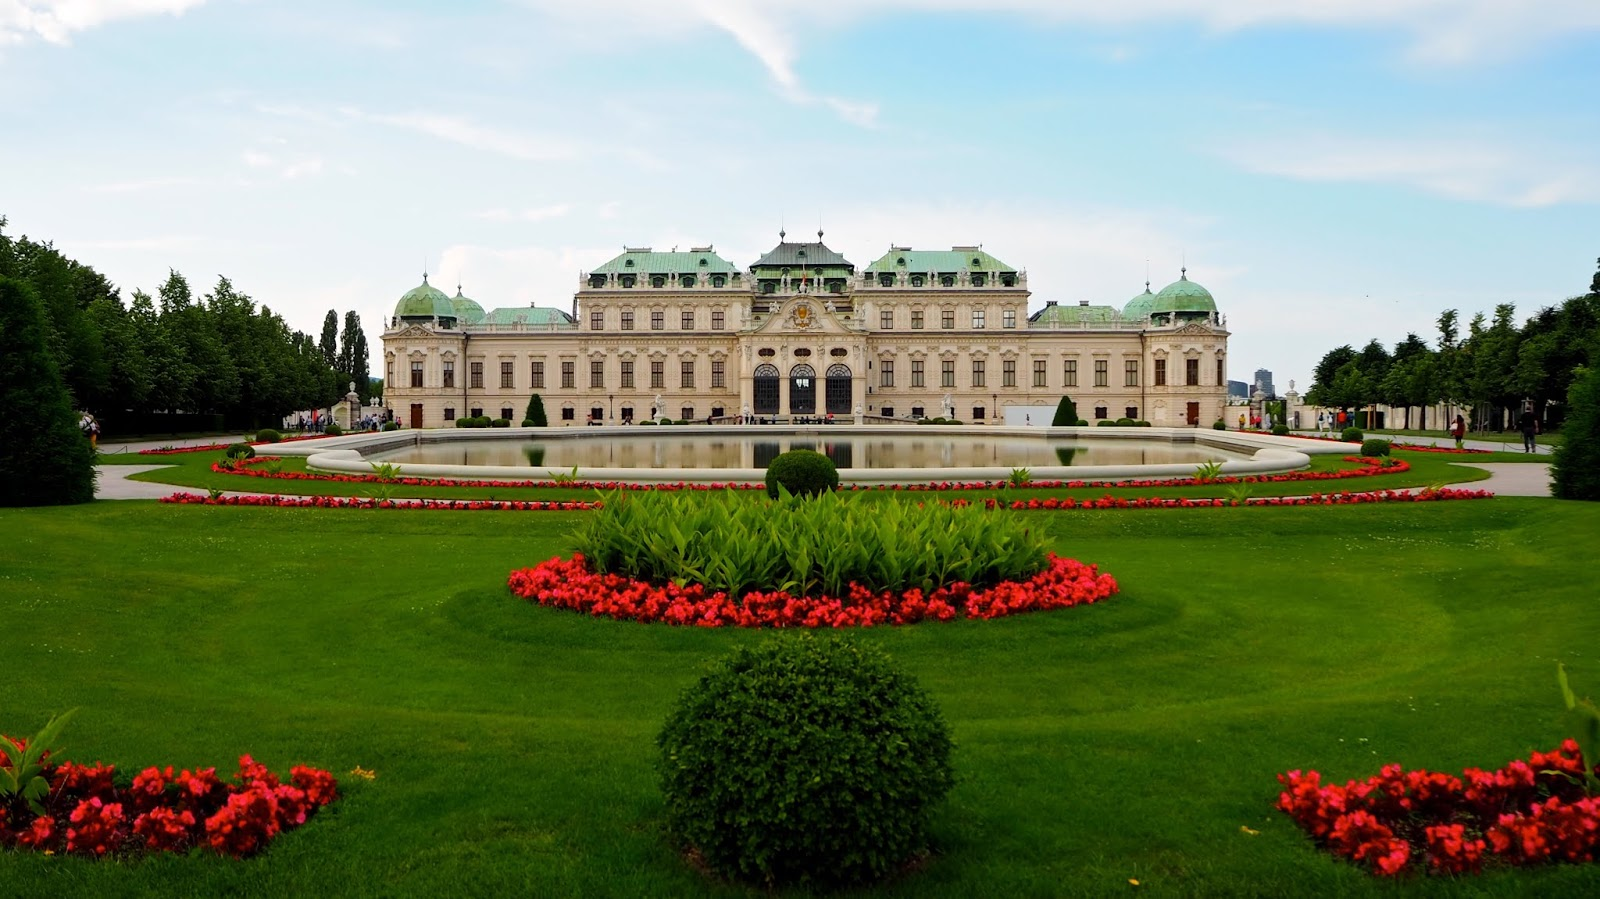 The Belvedere Vienna